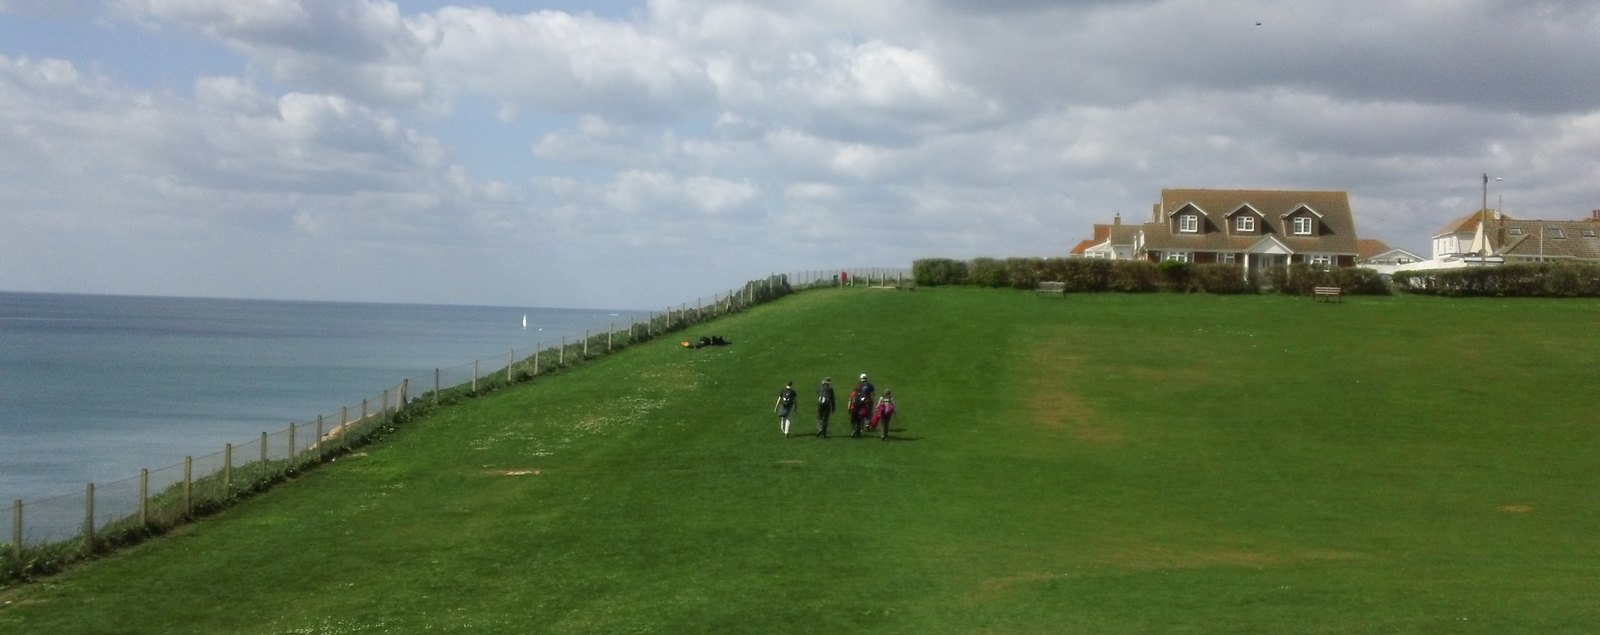 Appproaching Peacehaven for lunch